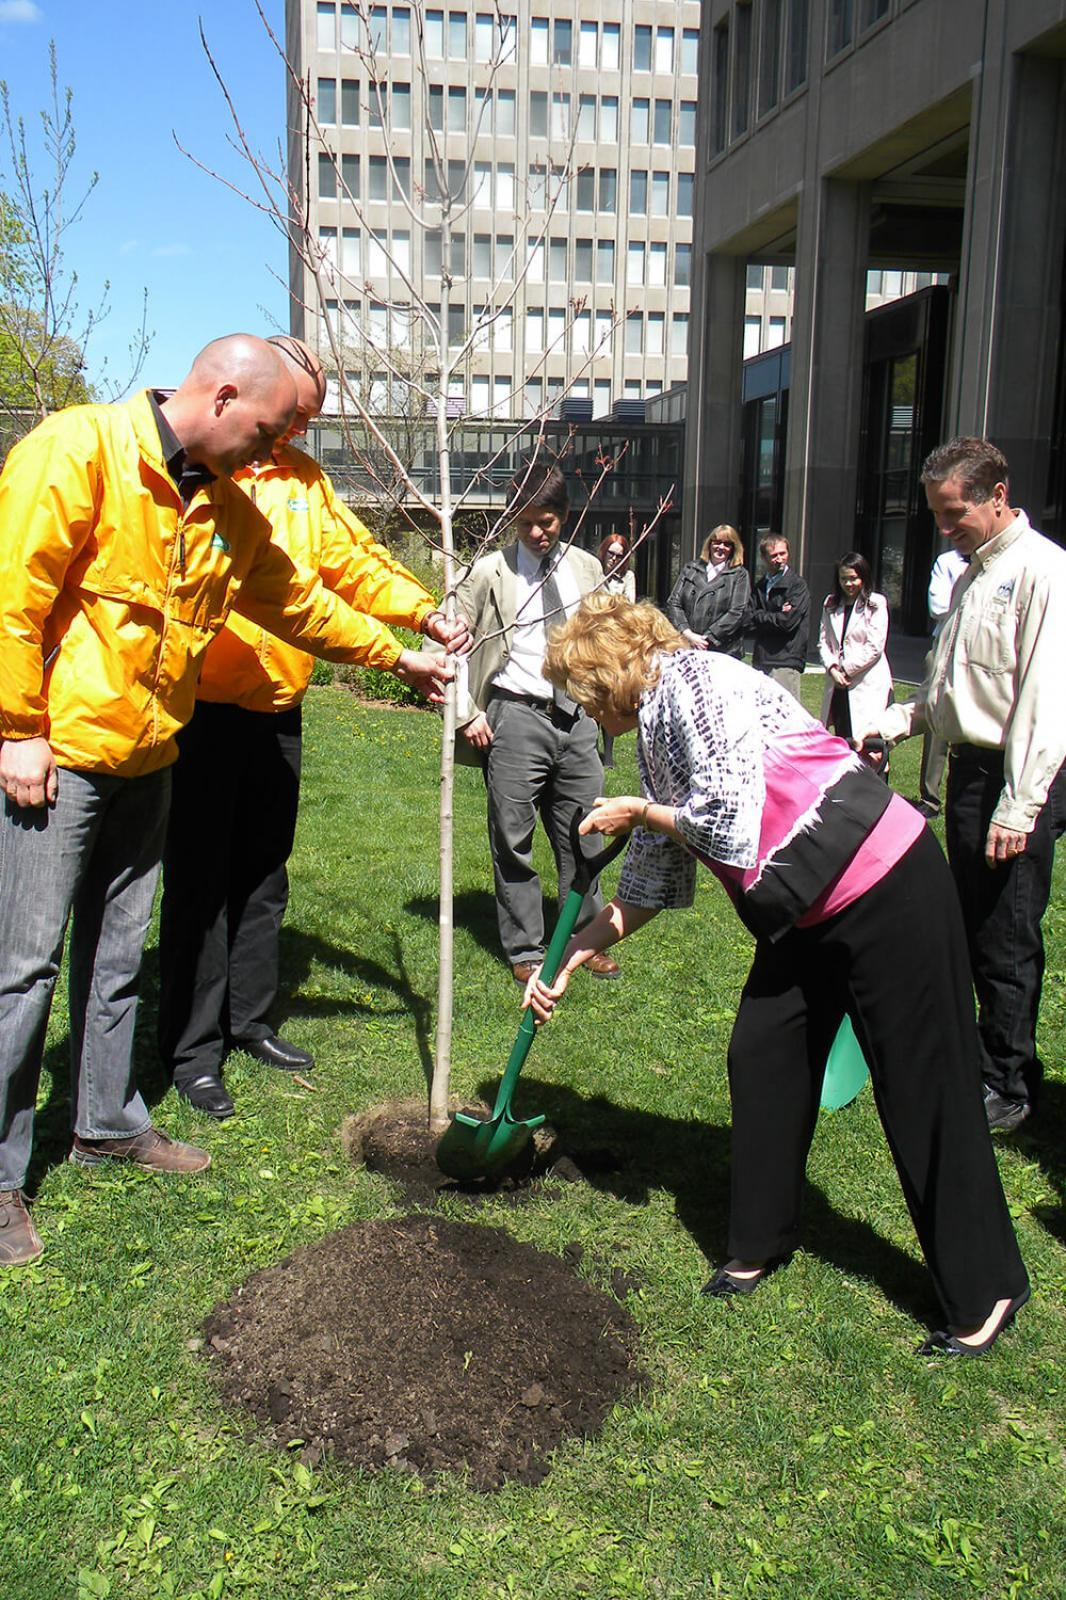 Minister of Natural Resources, Linda Jeffery, plants a red maple at the grounds of Queen's Park, as Peter and Tim van Stralen of Sunshine Grounds, Geoff Cape of Evergreen and Art Vanden Enden add their encouragement.